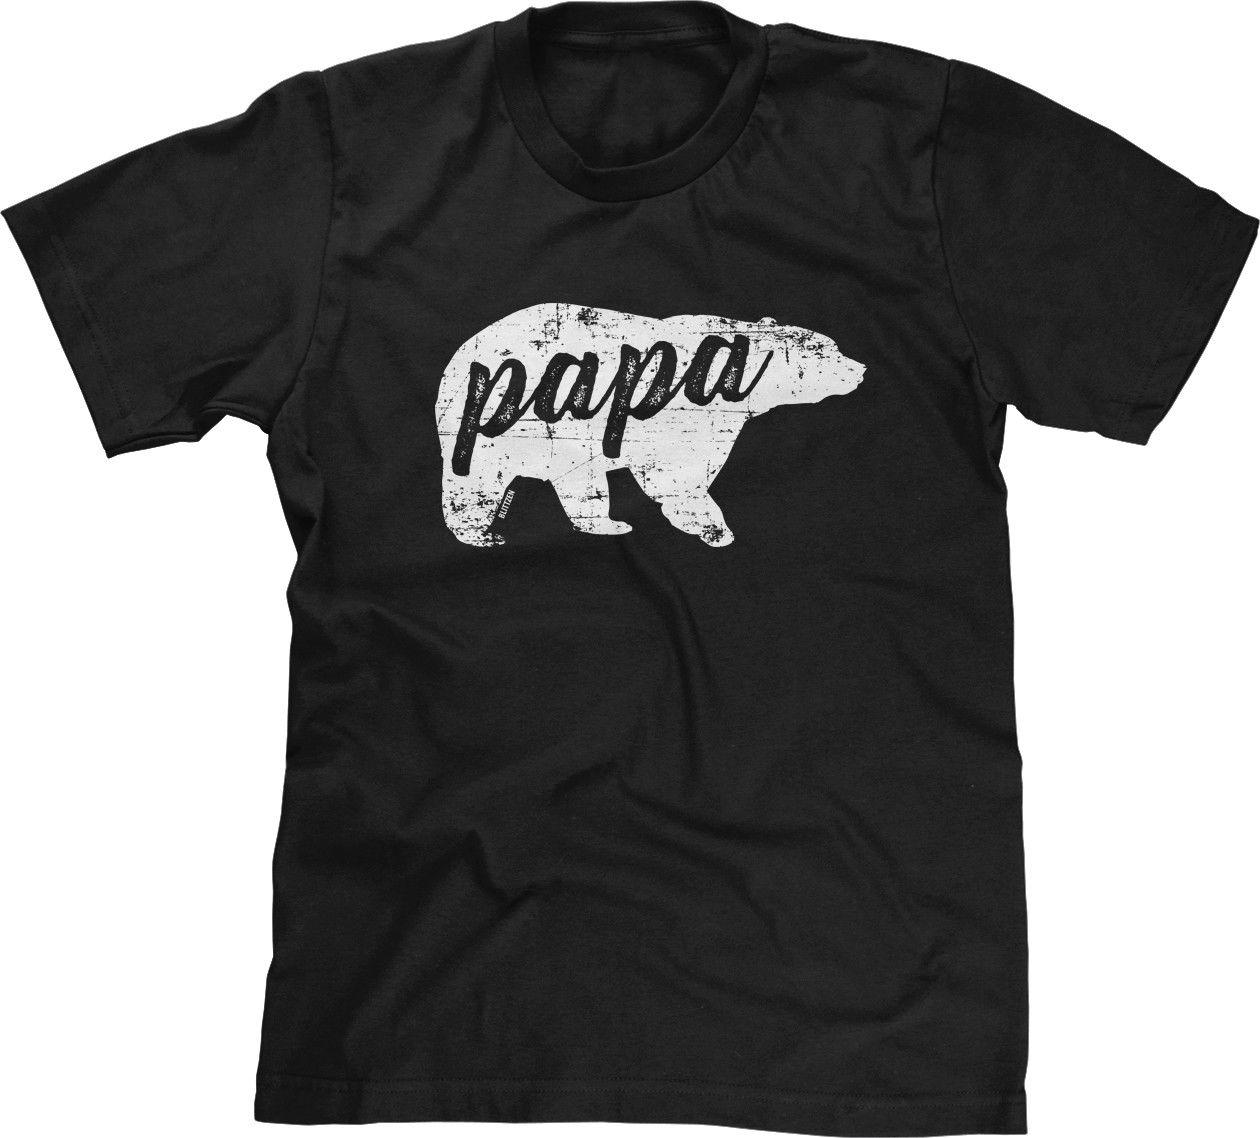 2230dbde9 Papa Bear New Dad Daddy Pops First Fathers Day Baby Present Gift Mens  TeeMens 100% Cotton Plus Size Top Tee Worlds Funniest T Shirts Cool Tee  Shirts Cheap ...